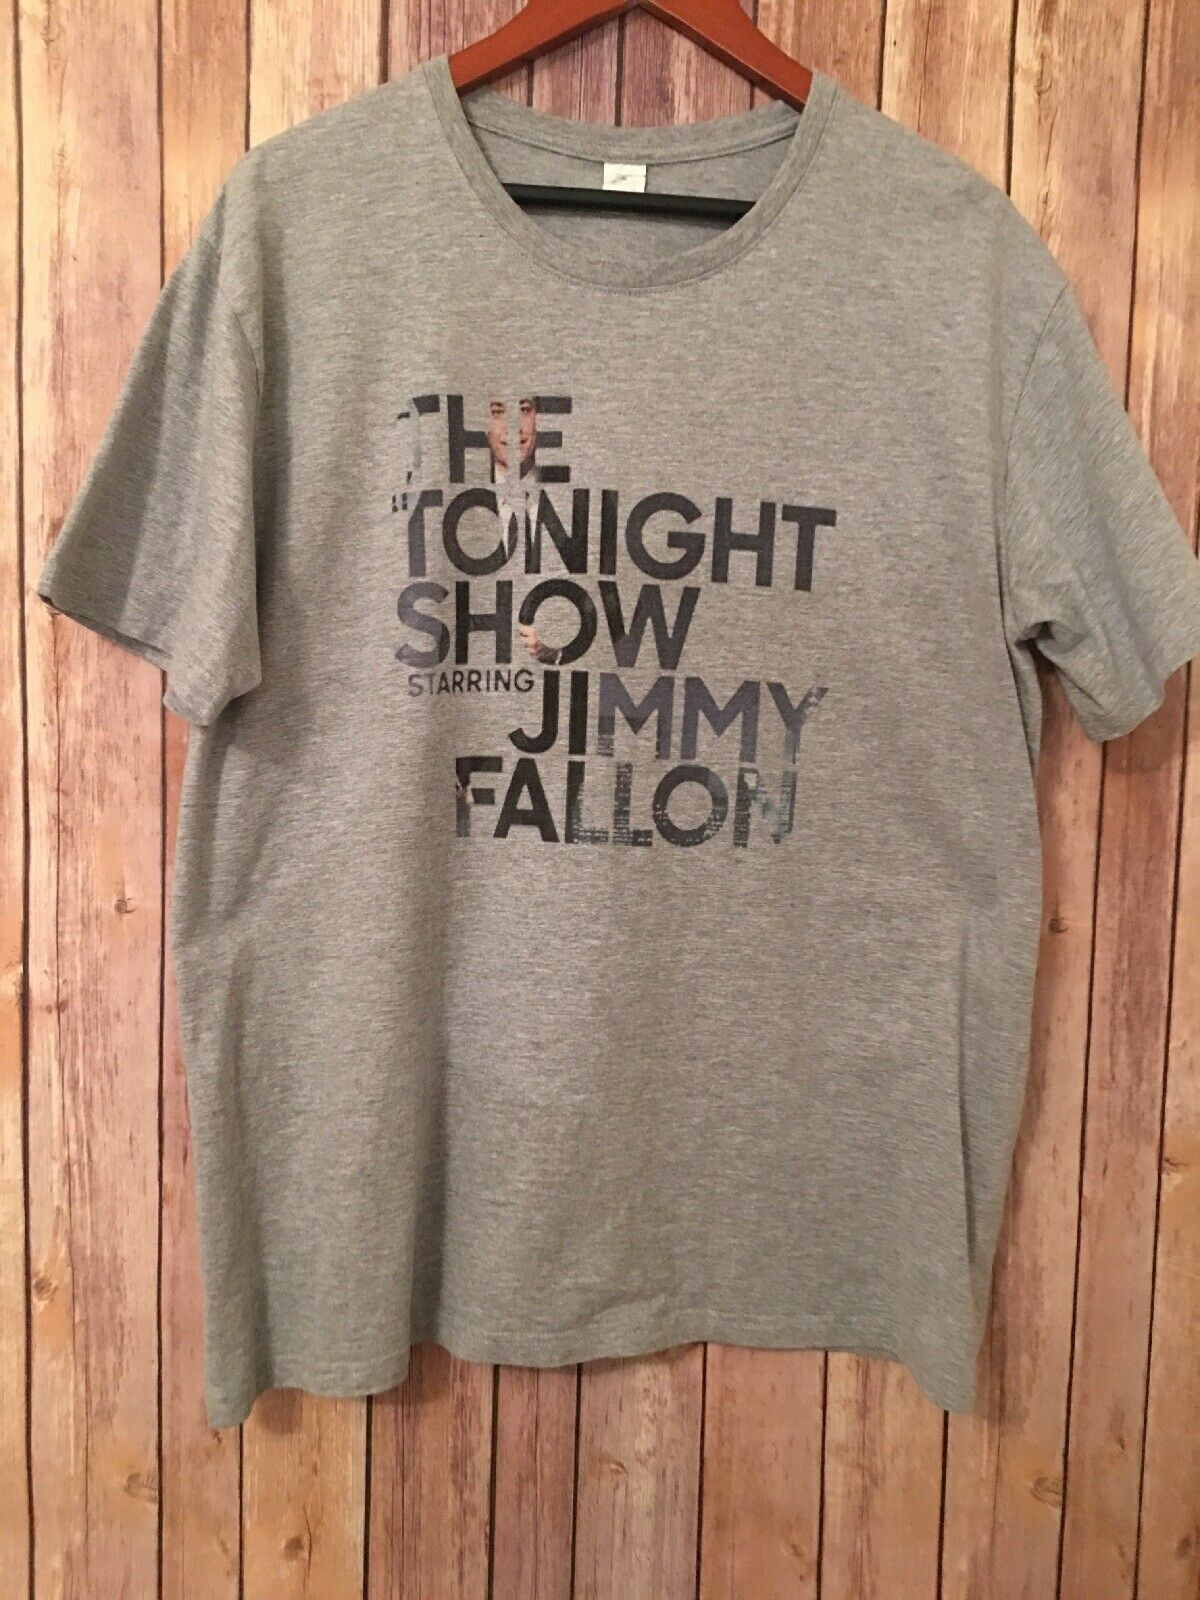 <font><b>The</b></font> <font><b>Tonight</b></font> <font><b>Show</b></font> Starring Jimmy Fallon T Shirt Size Xl image